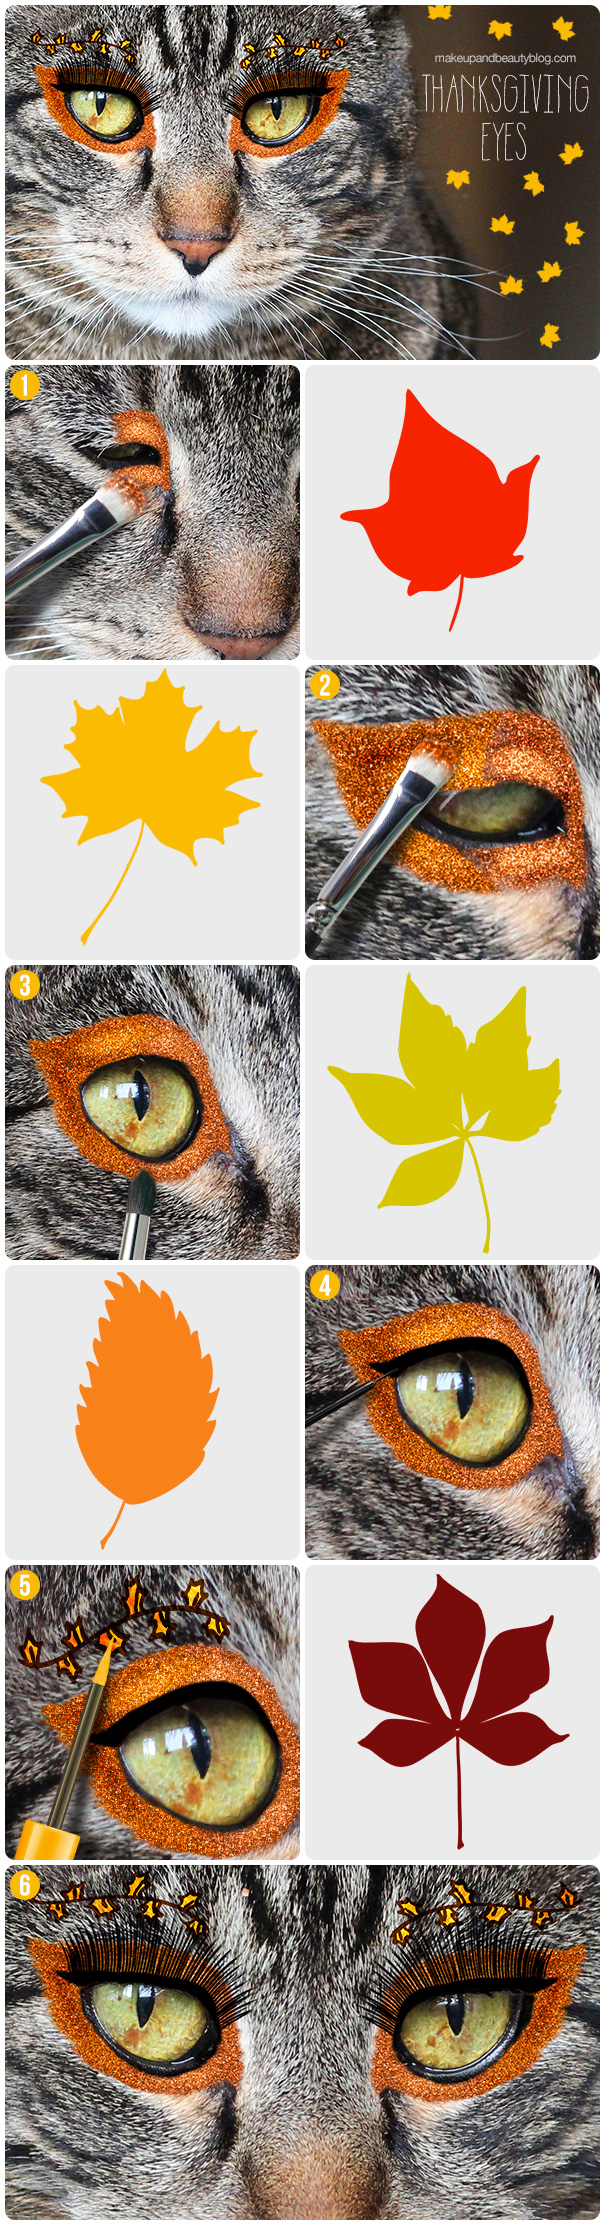 A Thanksgiving Makeup Look by Tabs the Cat